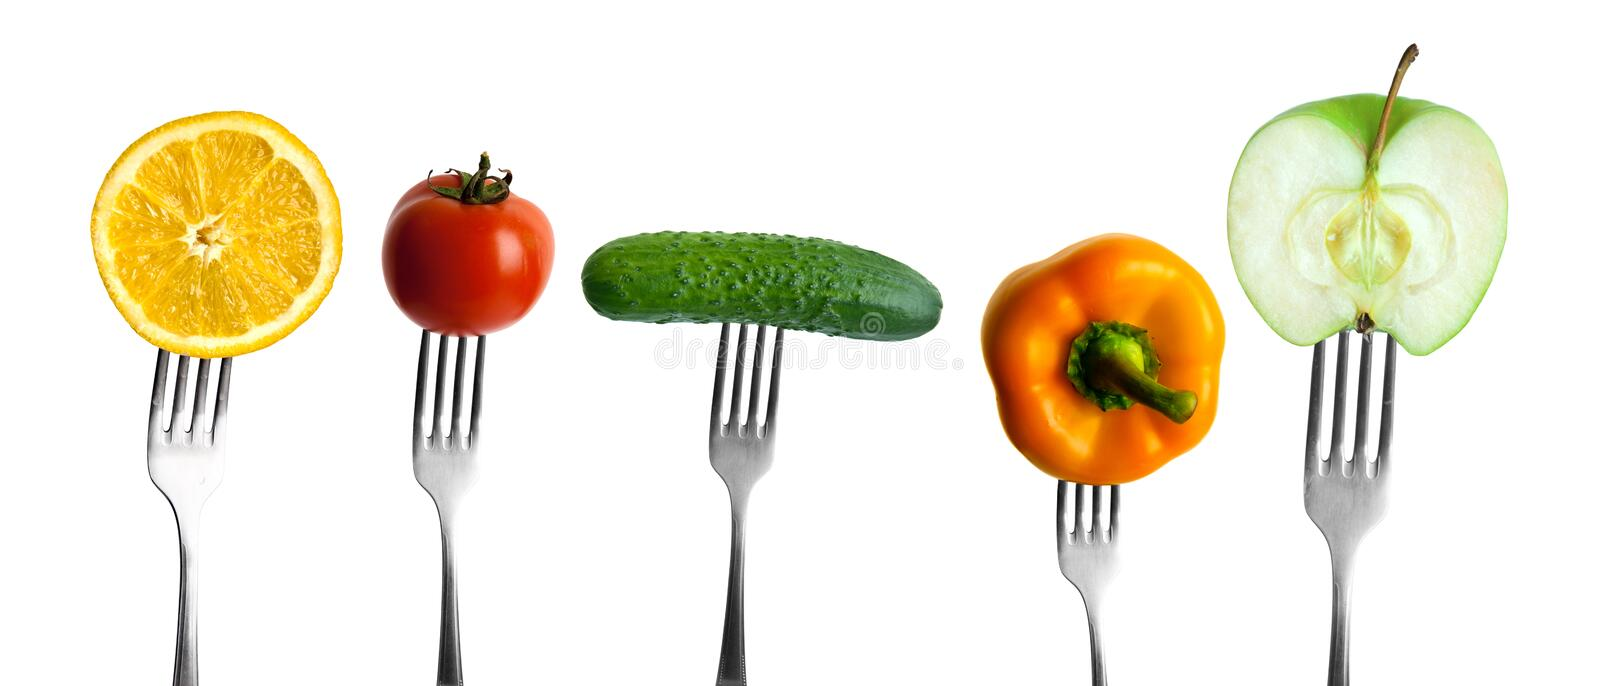 Vegetables and fruits on forks stock photography